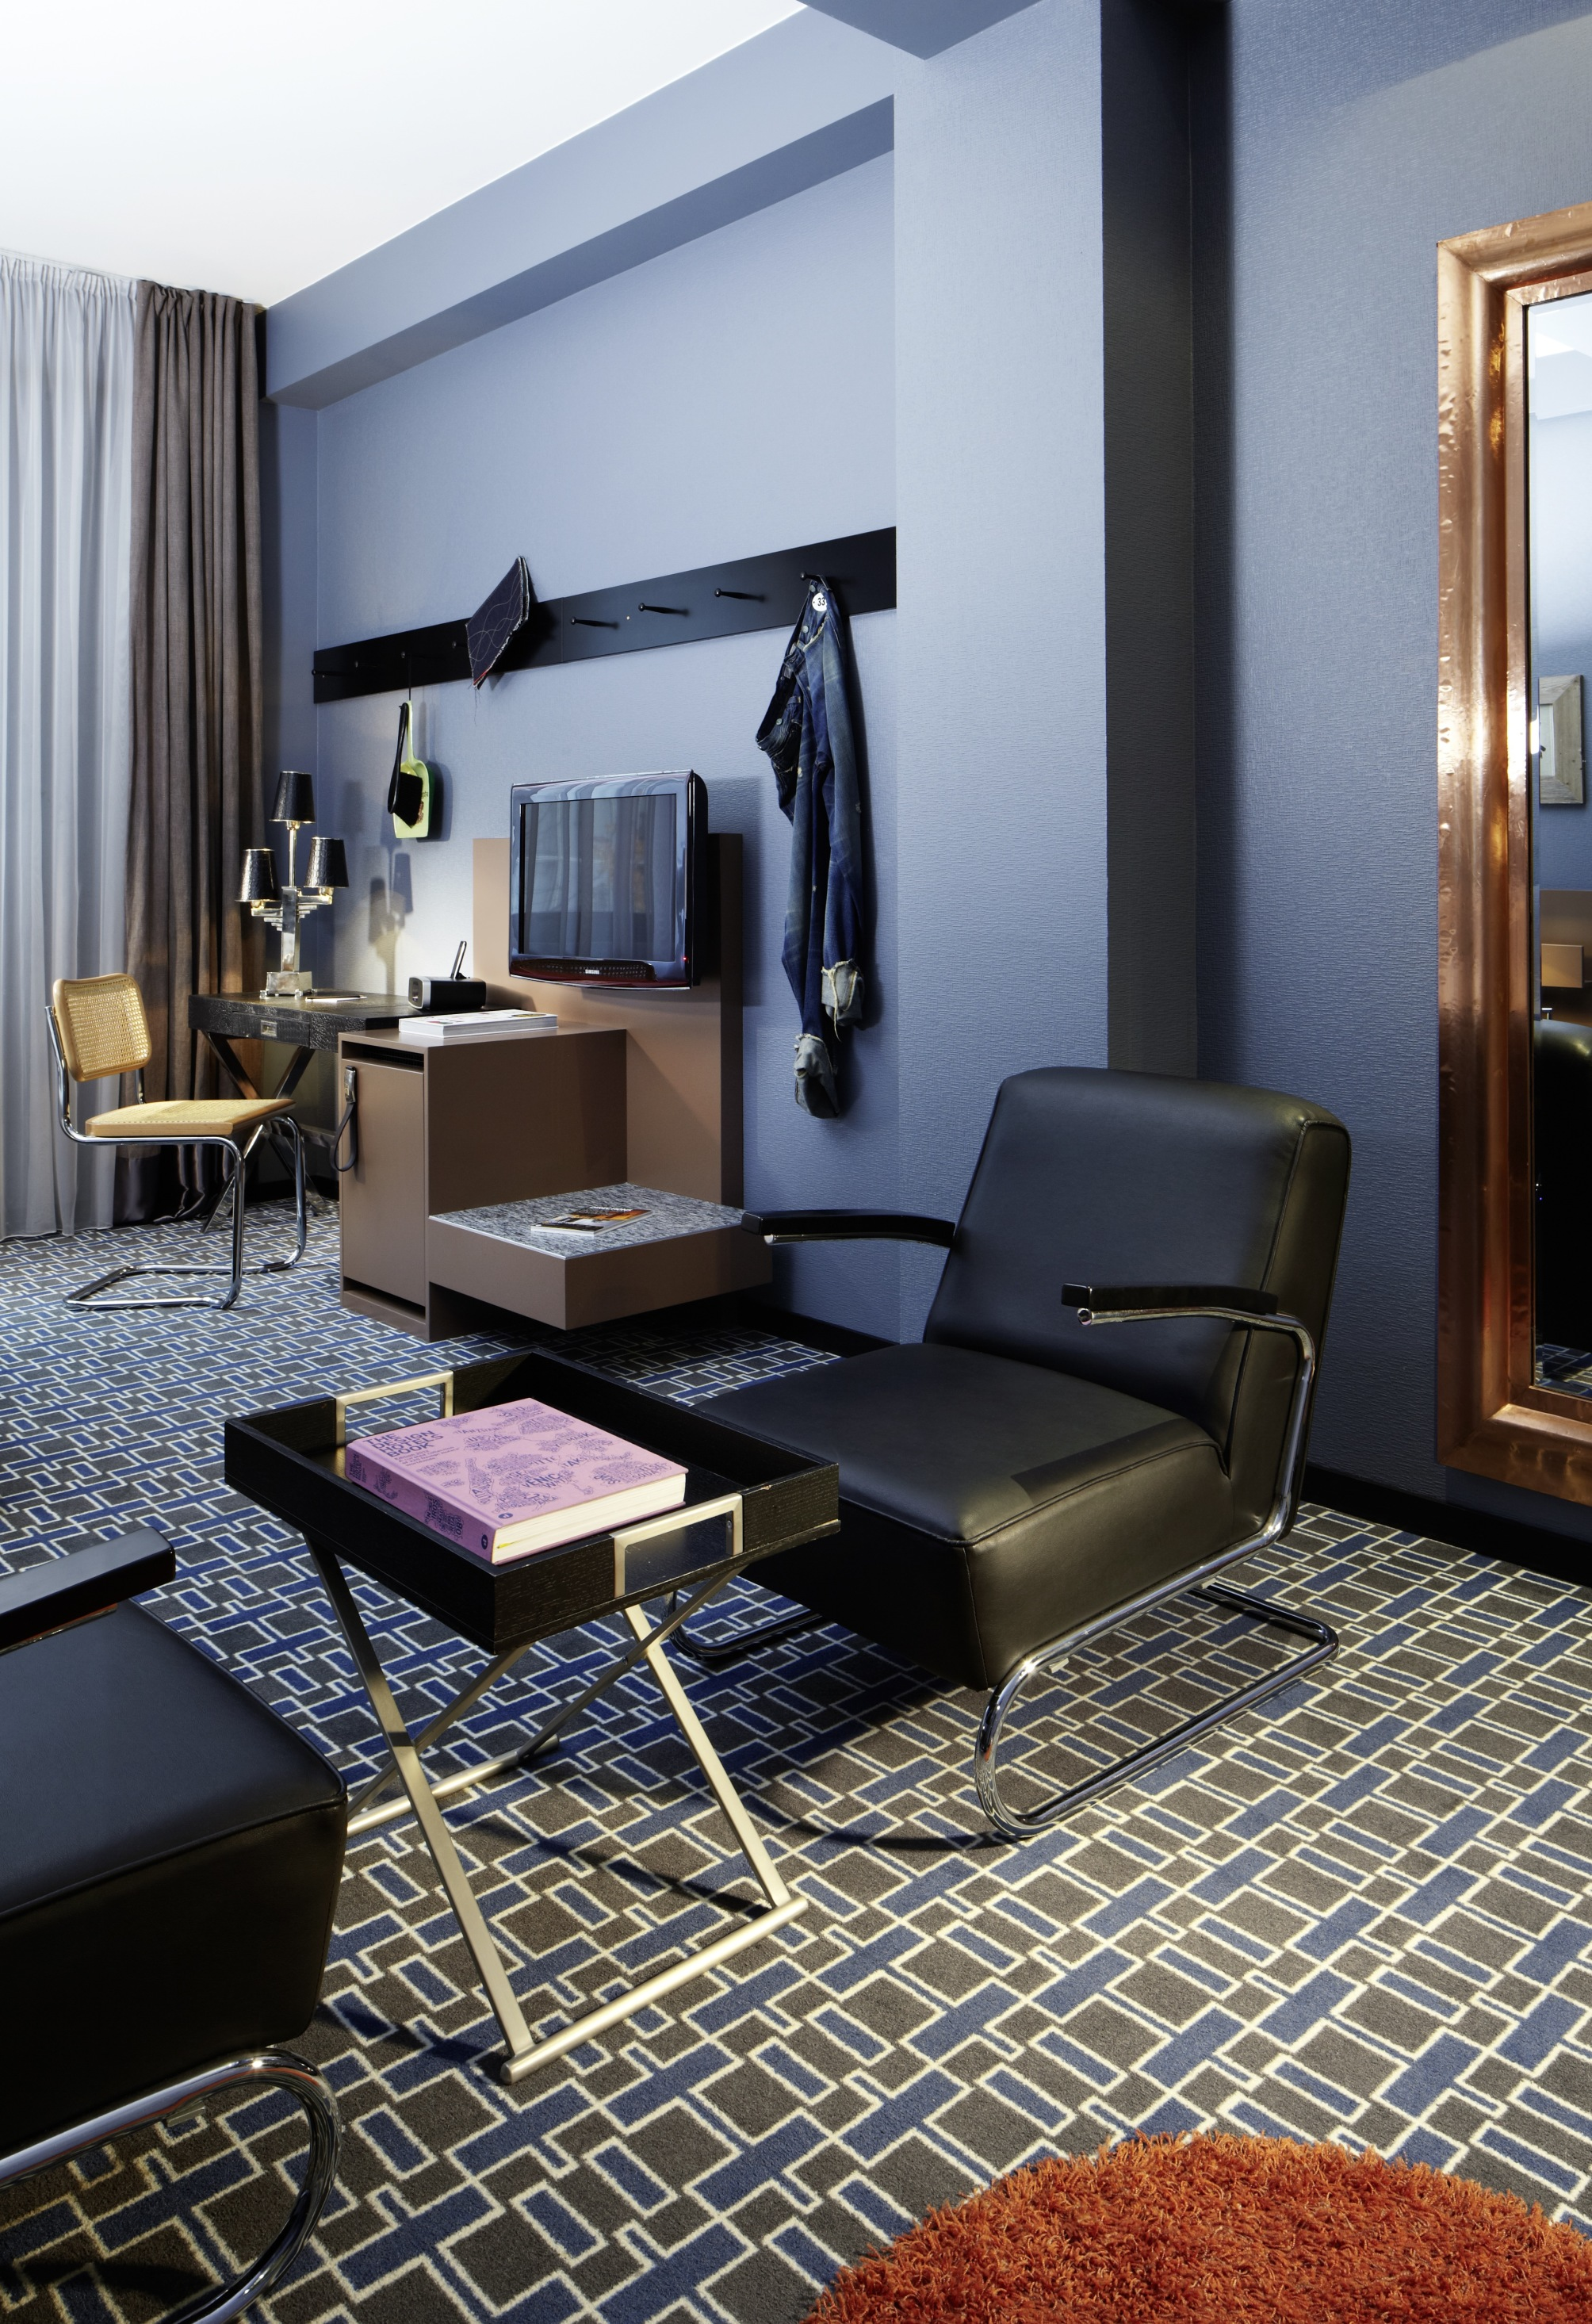 hotel 25hours hotel by levi 39 s em frankfurt desde 67 rumbo. Black Bedroom Furniture Sets. Home Design Ideas